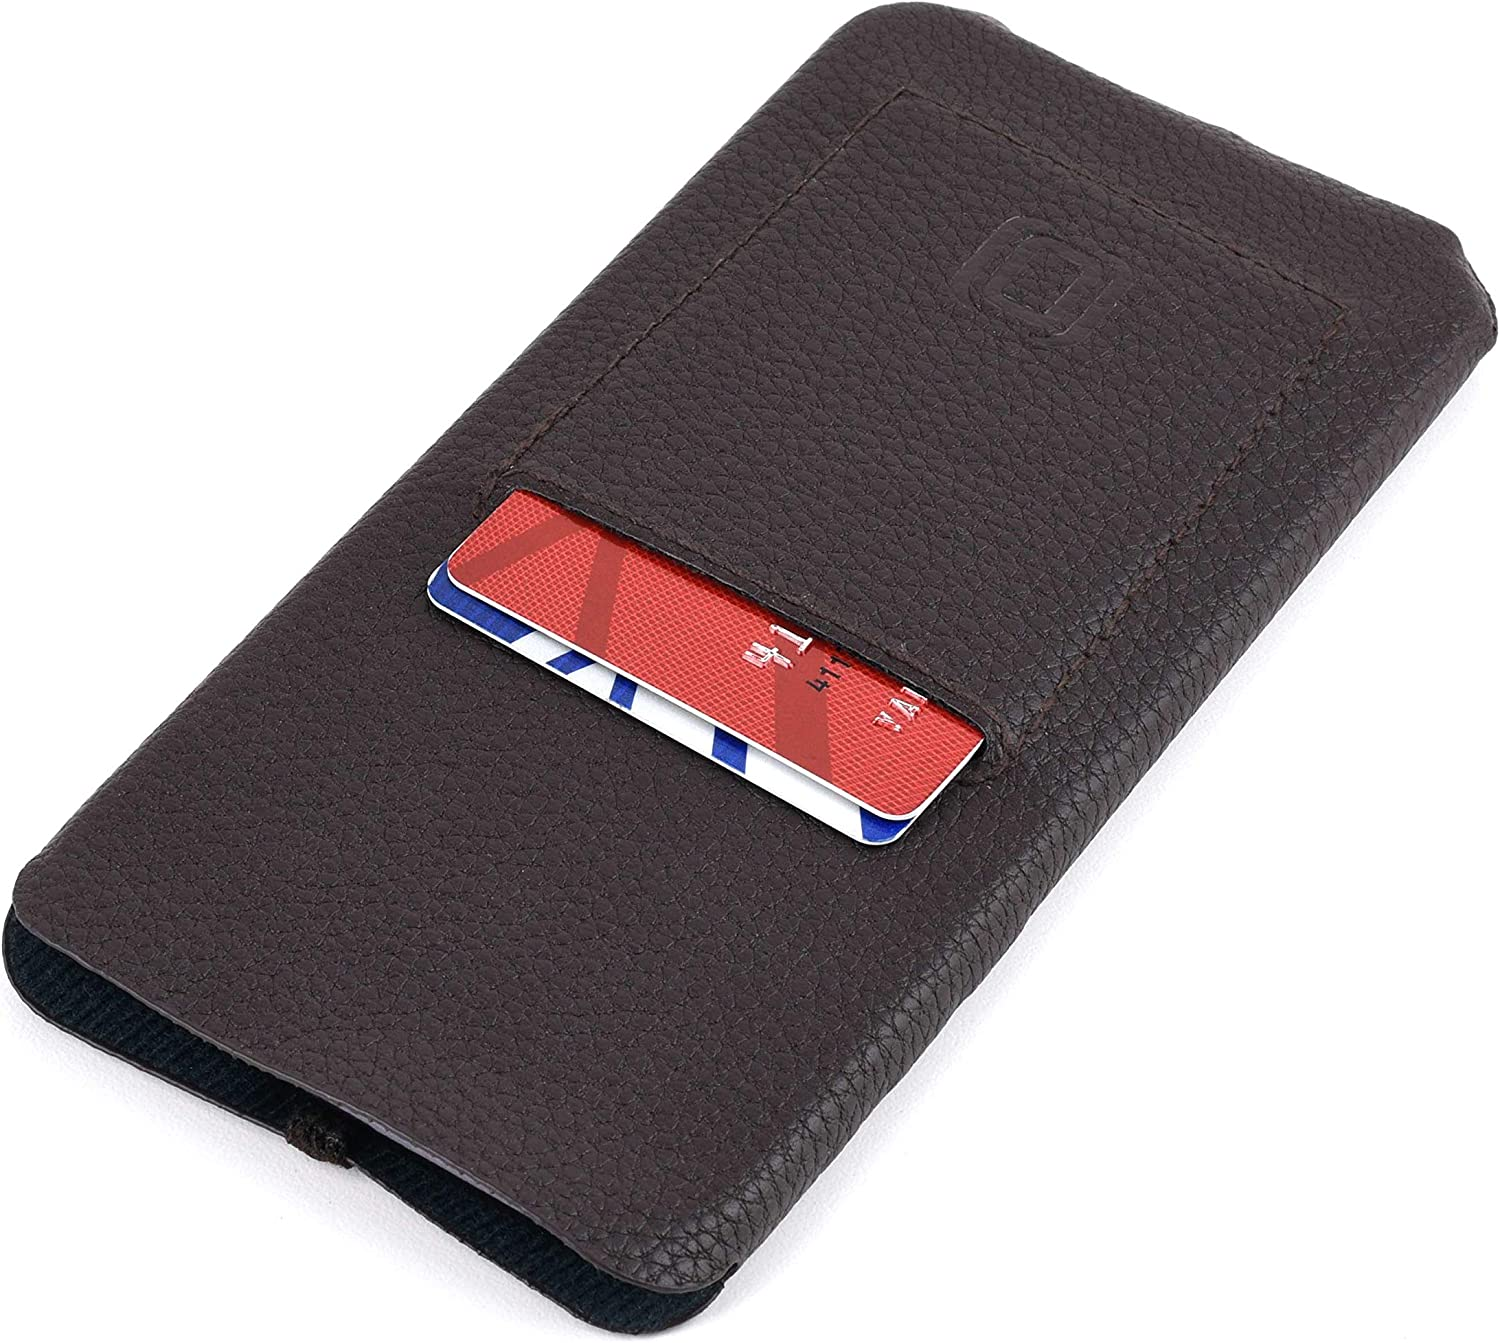 Dockem Minima Wallet Sleeve for iPhone 11 and iPhone XR (6.1